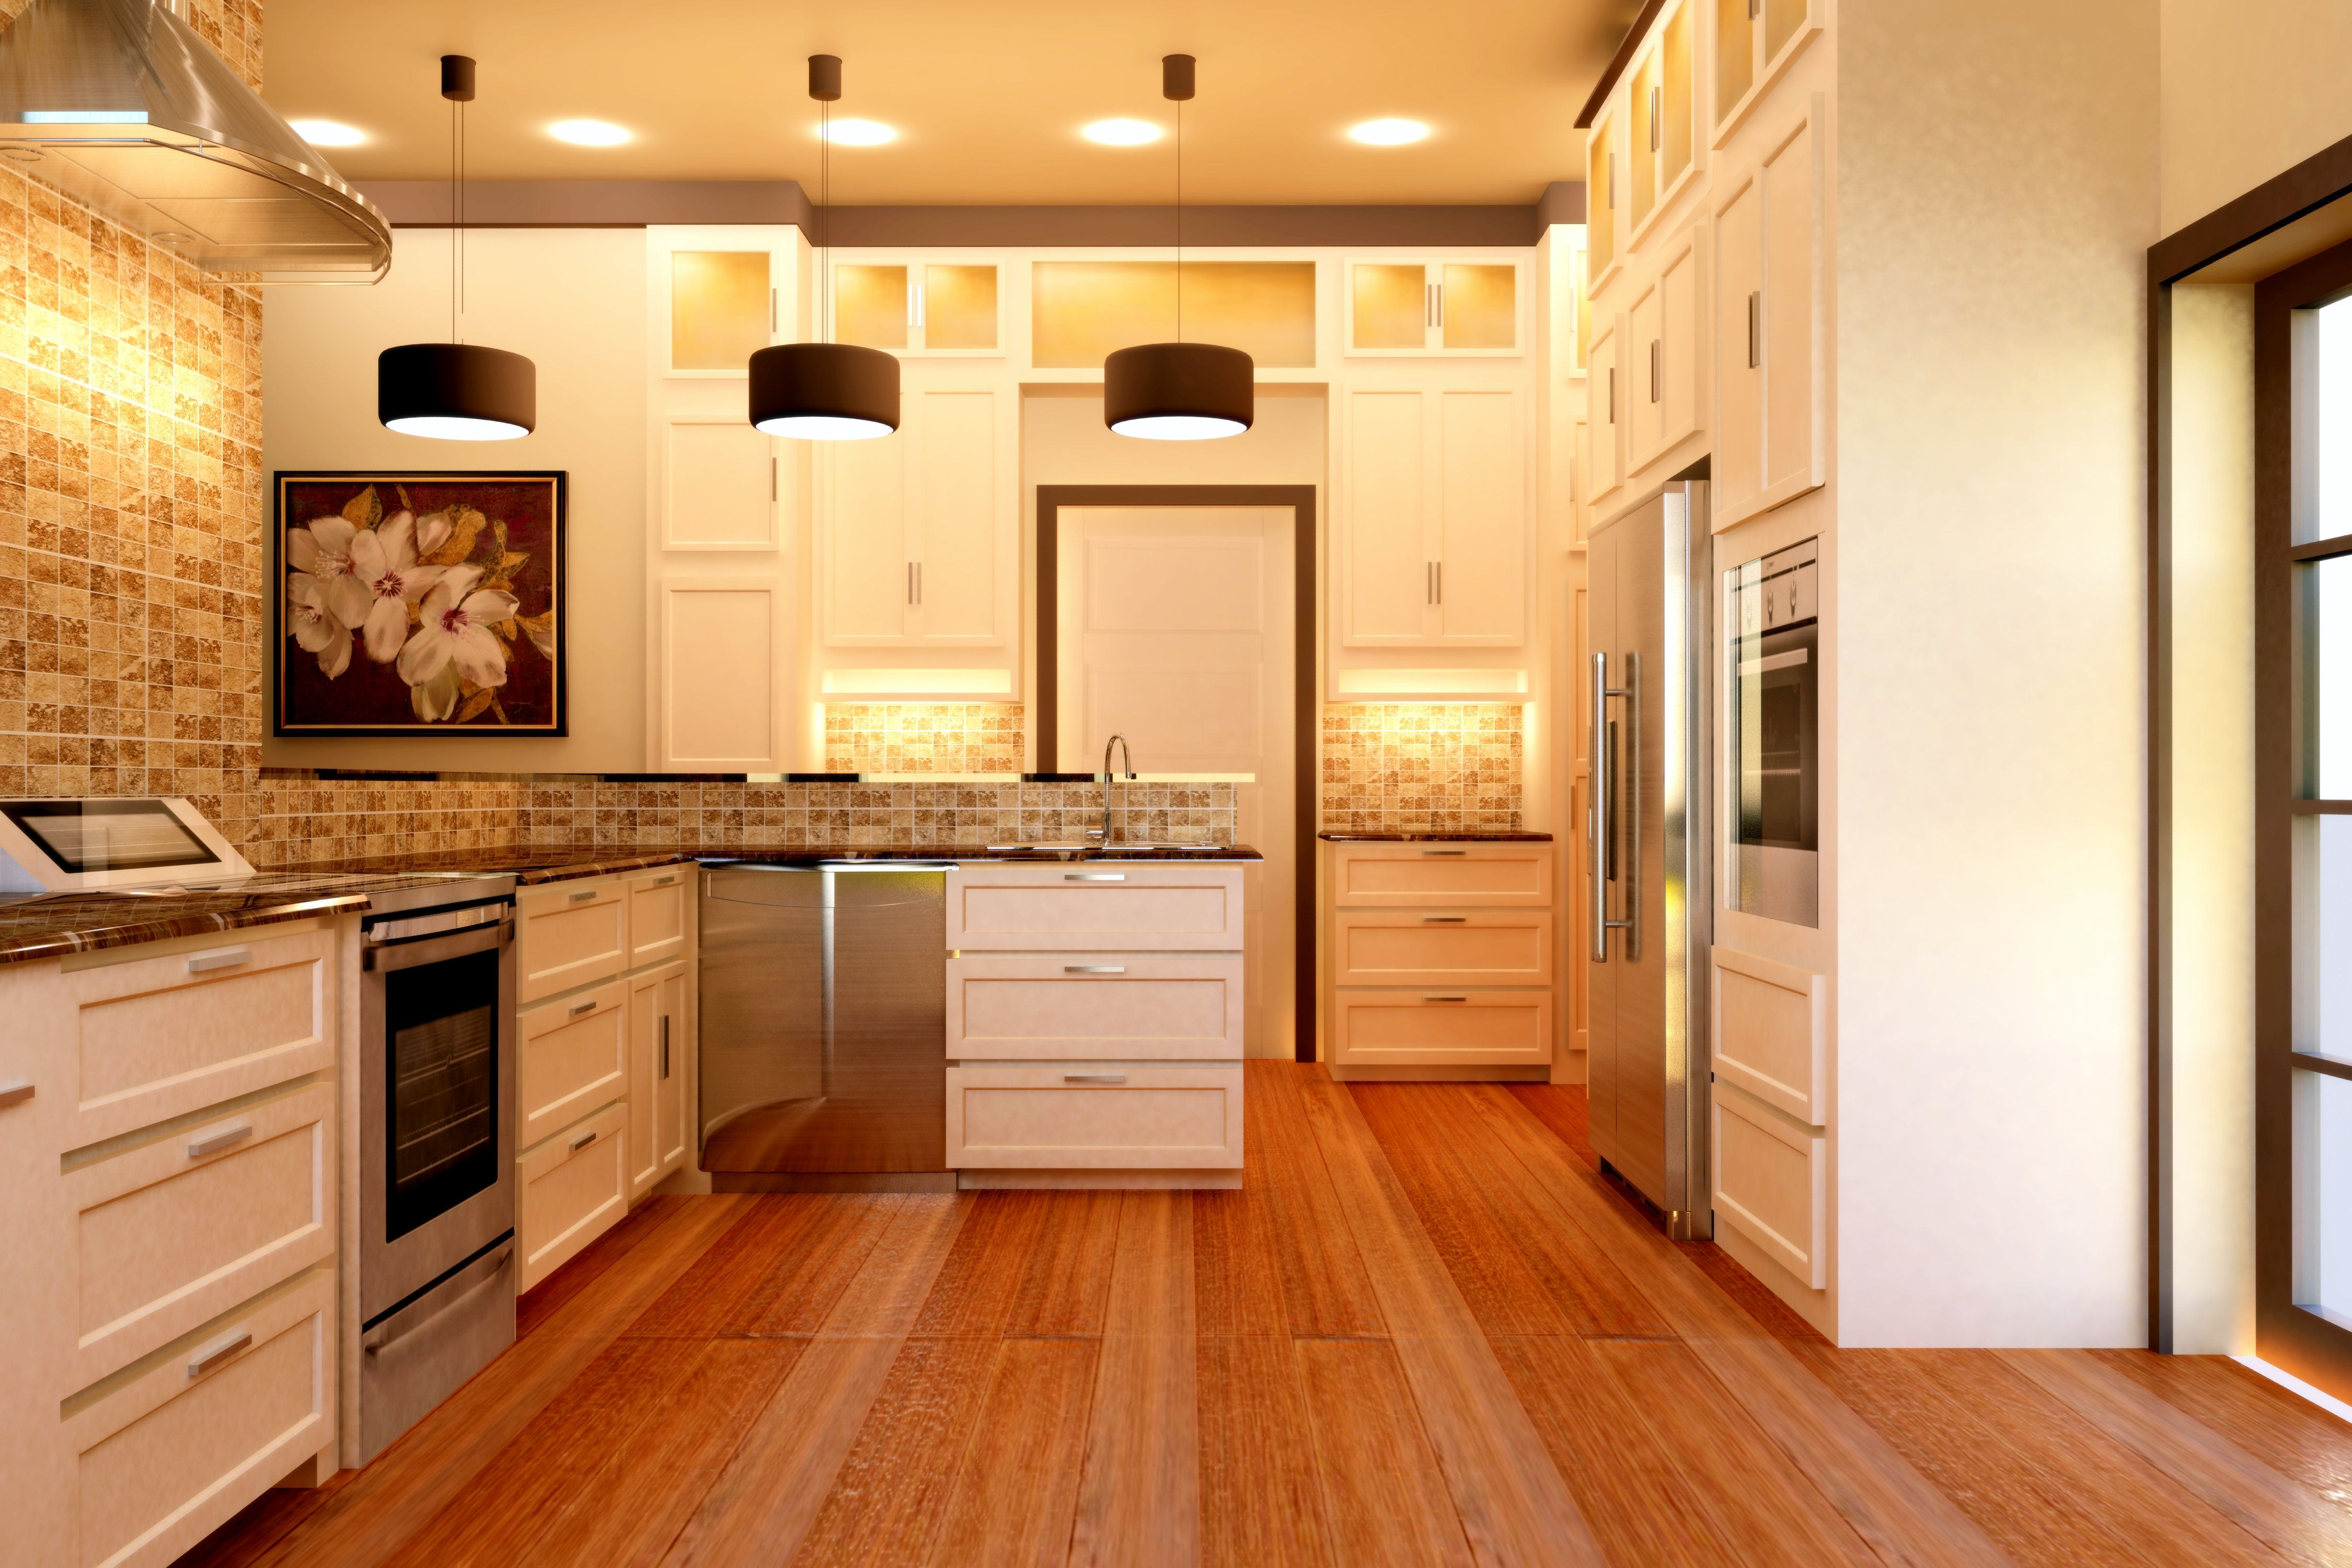 Kitchen Remodeling Madison Wi | http://sodakaustica.com | Pinterest ...